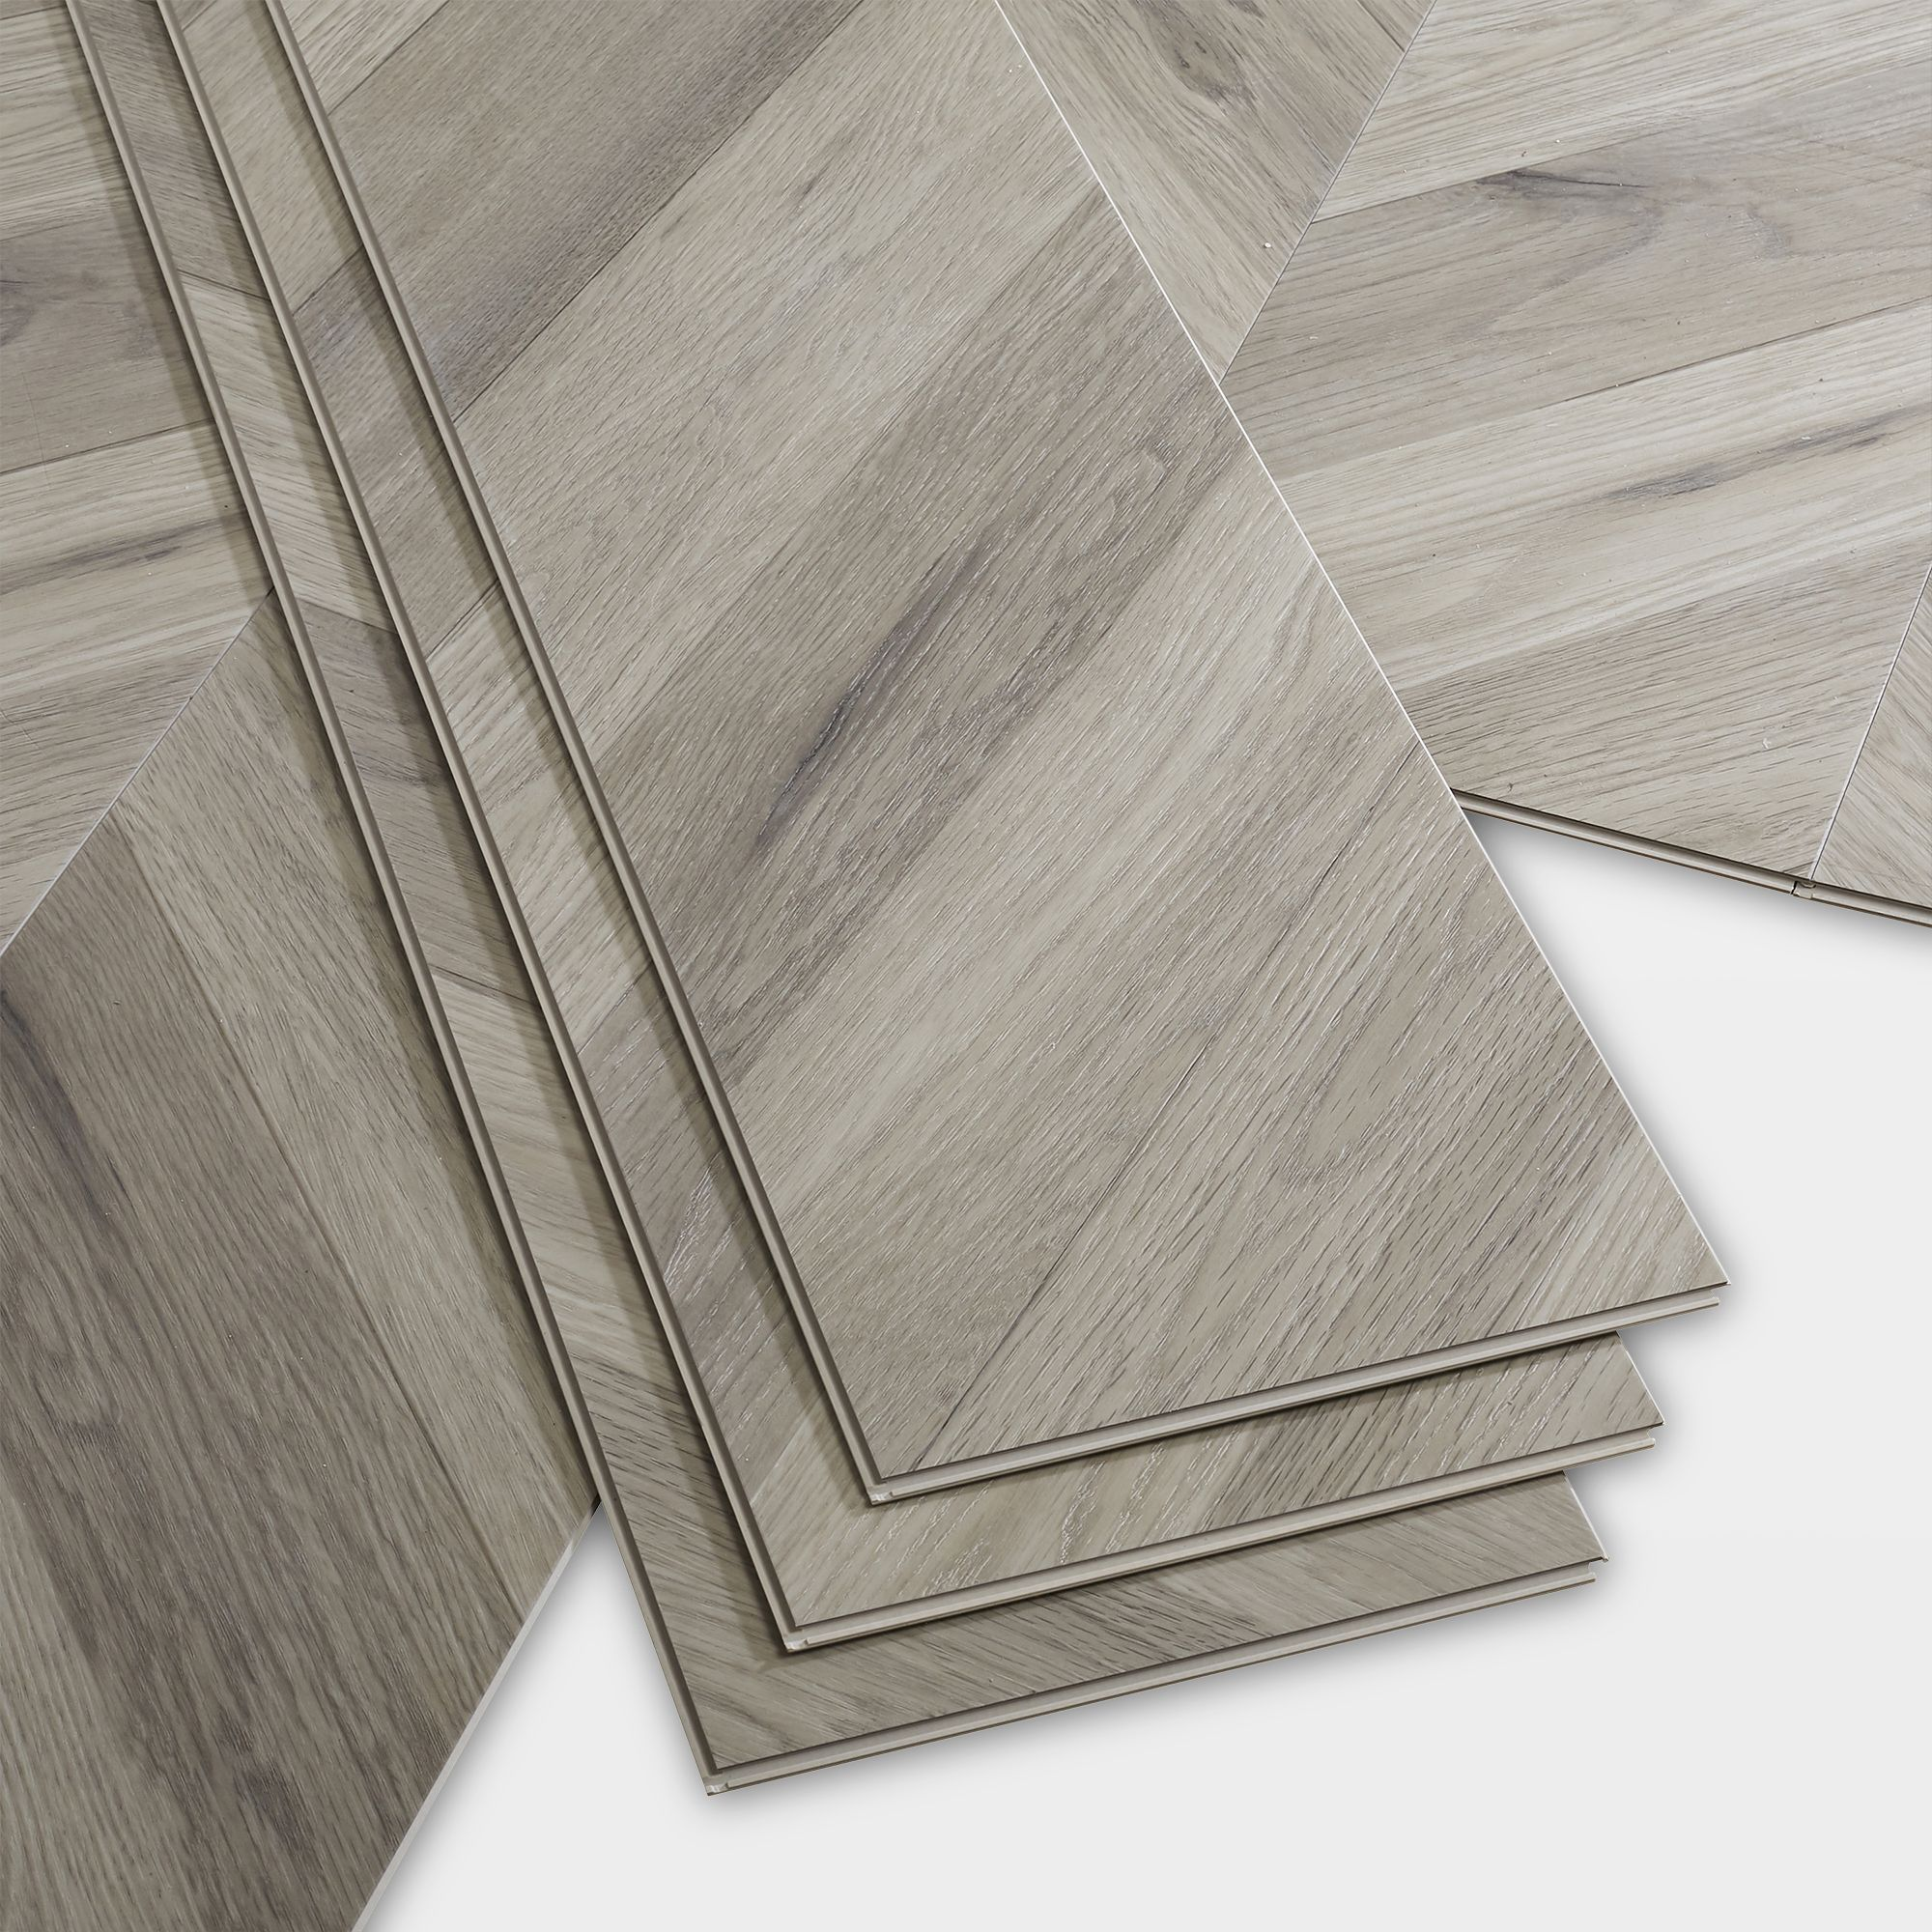 Goodhome Jazy Grey Parquet Effect Luxury Vinyl Click Flooring 2 24m Pack Departments Diy At B Q